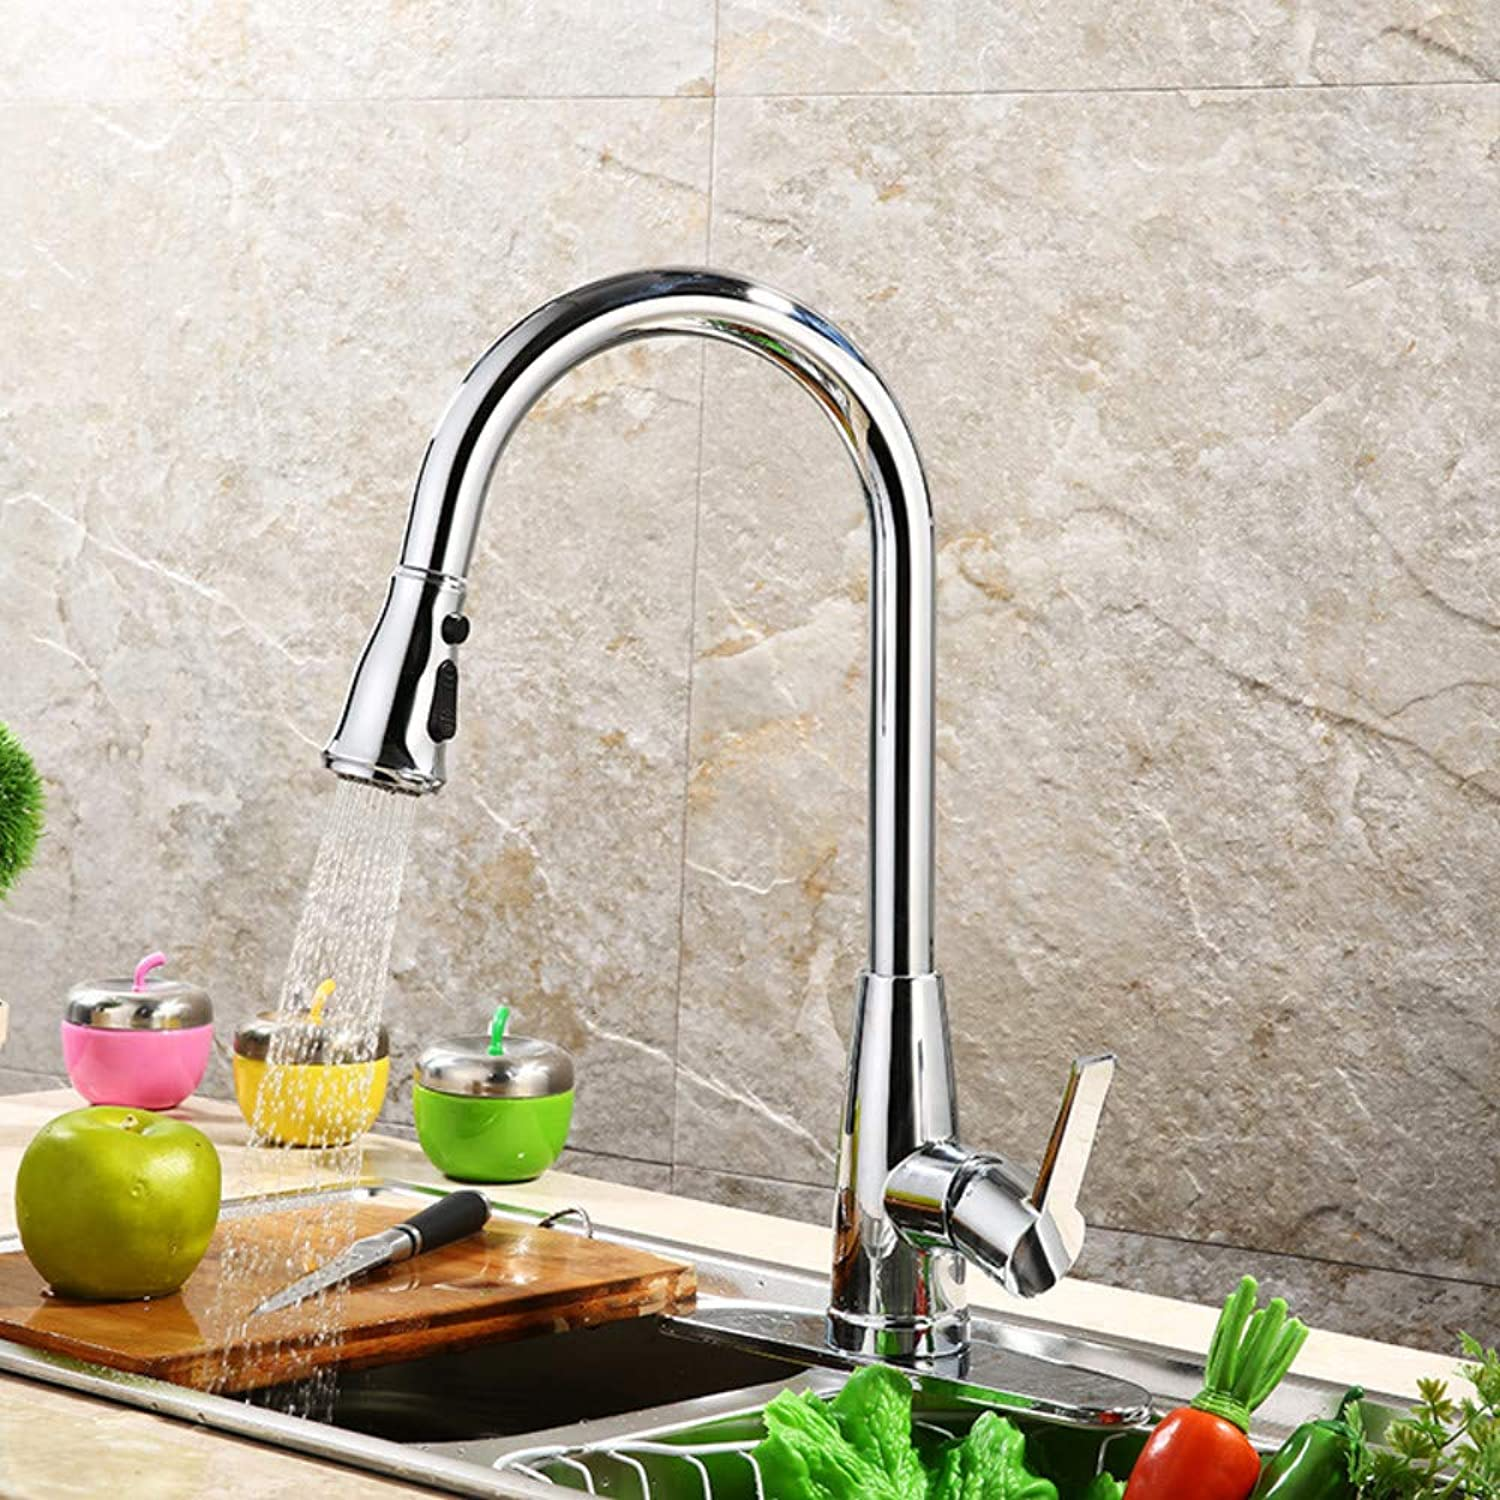 redOOY Taps Faucet Sink Faucet Into The Wall Bathroom Kitchen Mixer Faucet Kitchen Hot And Cold Faucet